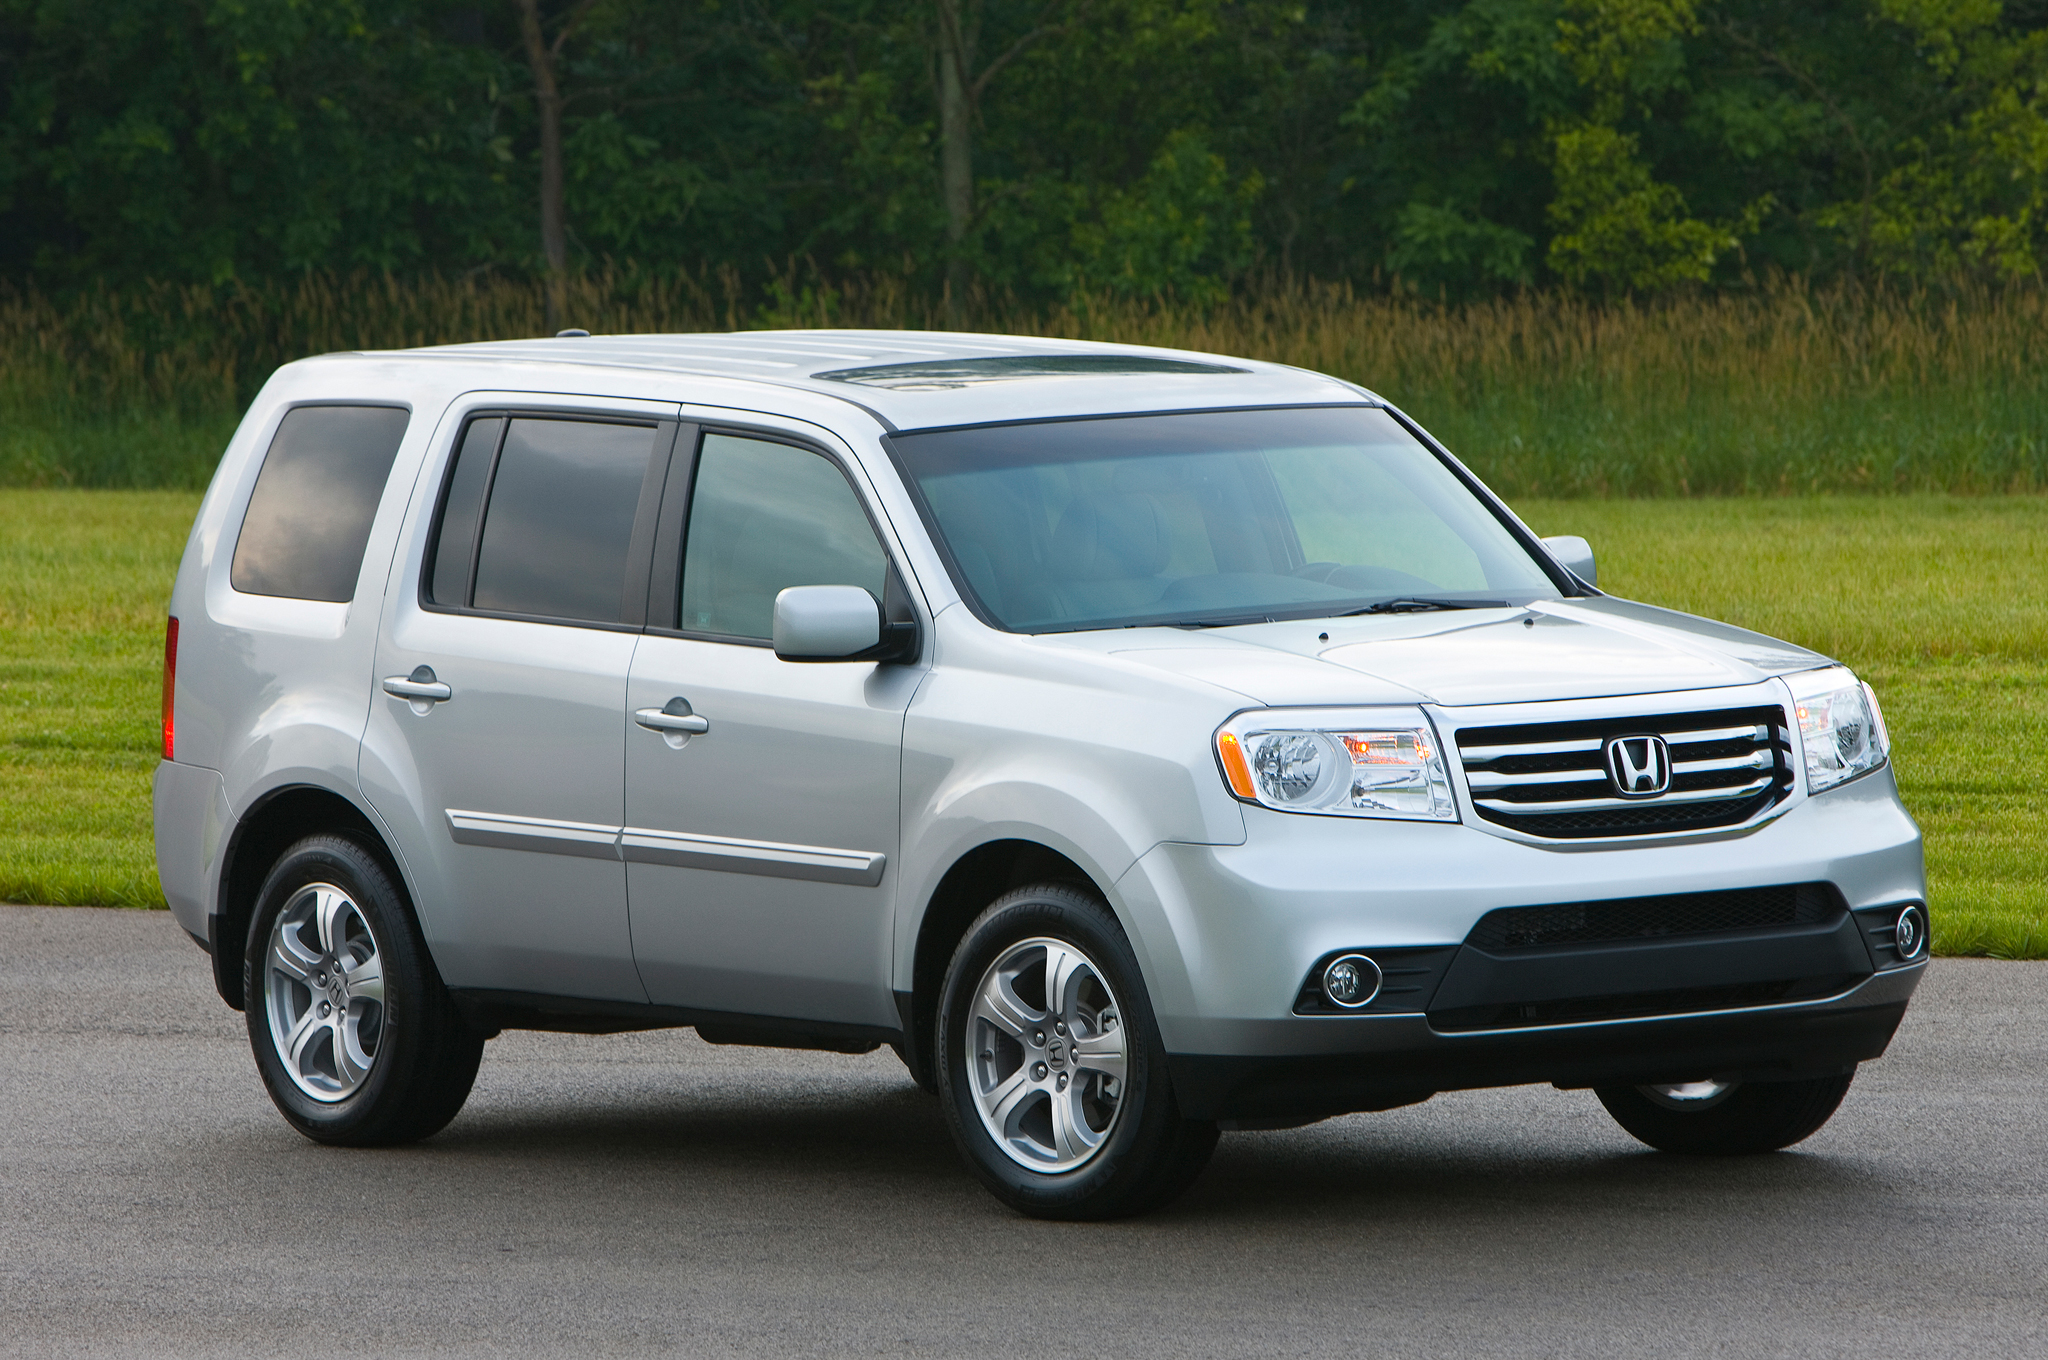 2014 honda pilot ii pictures information and specs For2014 Honda Pilot Dimensions